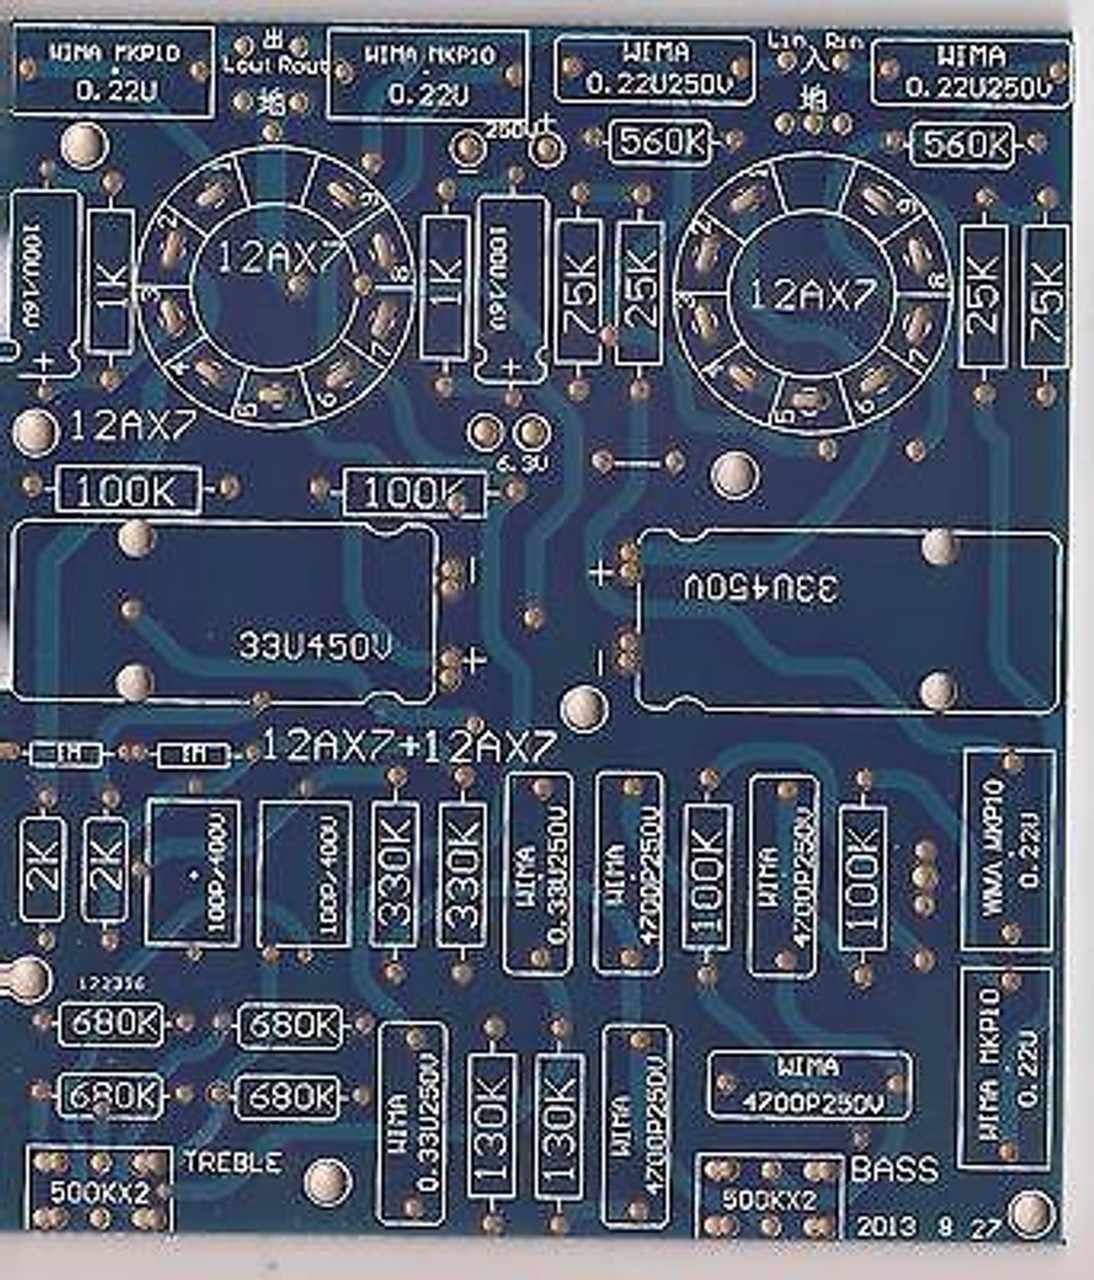 Tone Controltone Control Circuit Ic Stereostereo Tone Control Icic